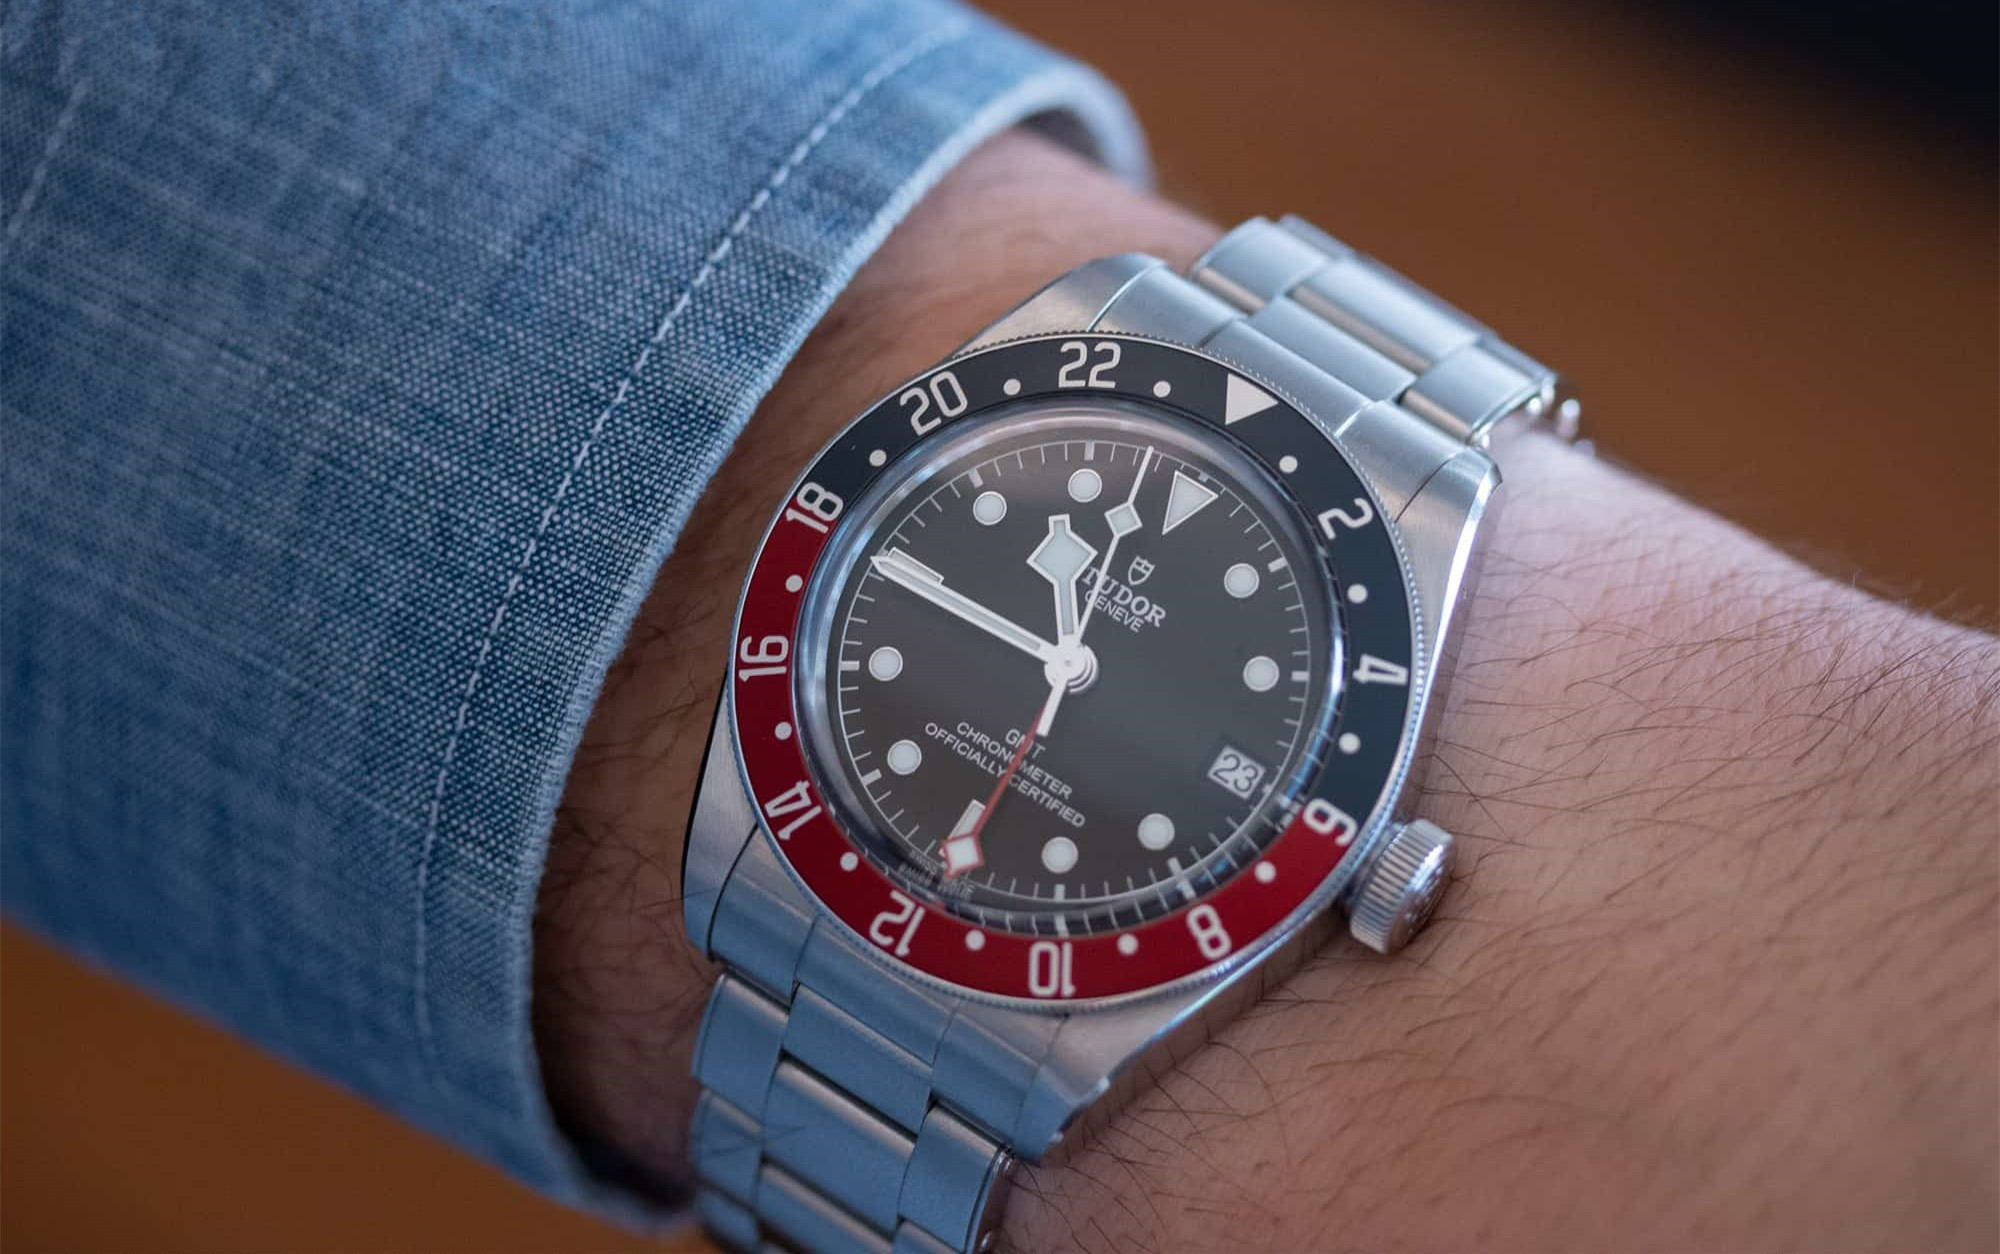 This Tudor has been favored by many watch lovers by its brilliant design and low price.